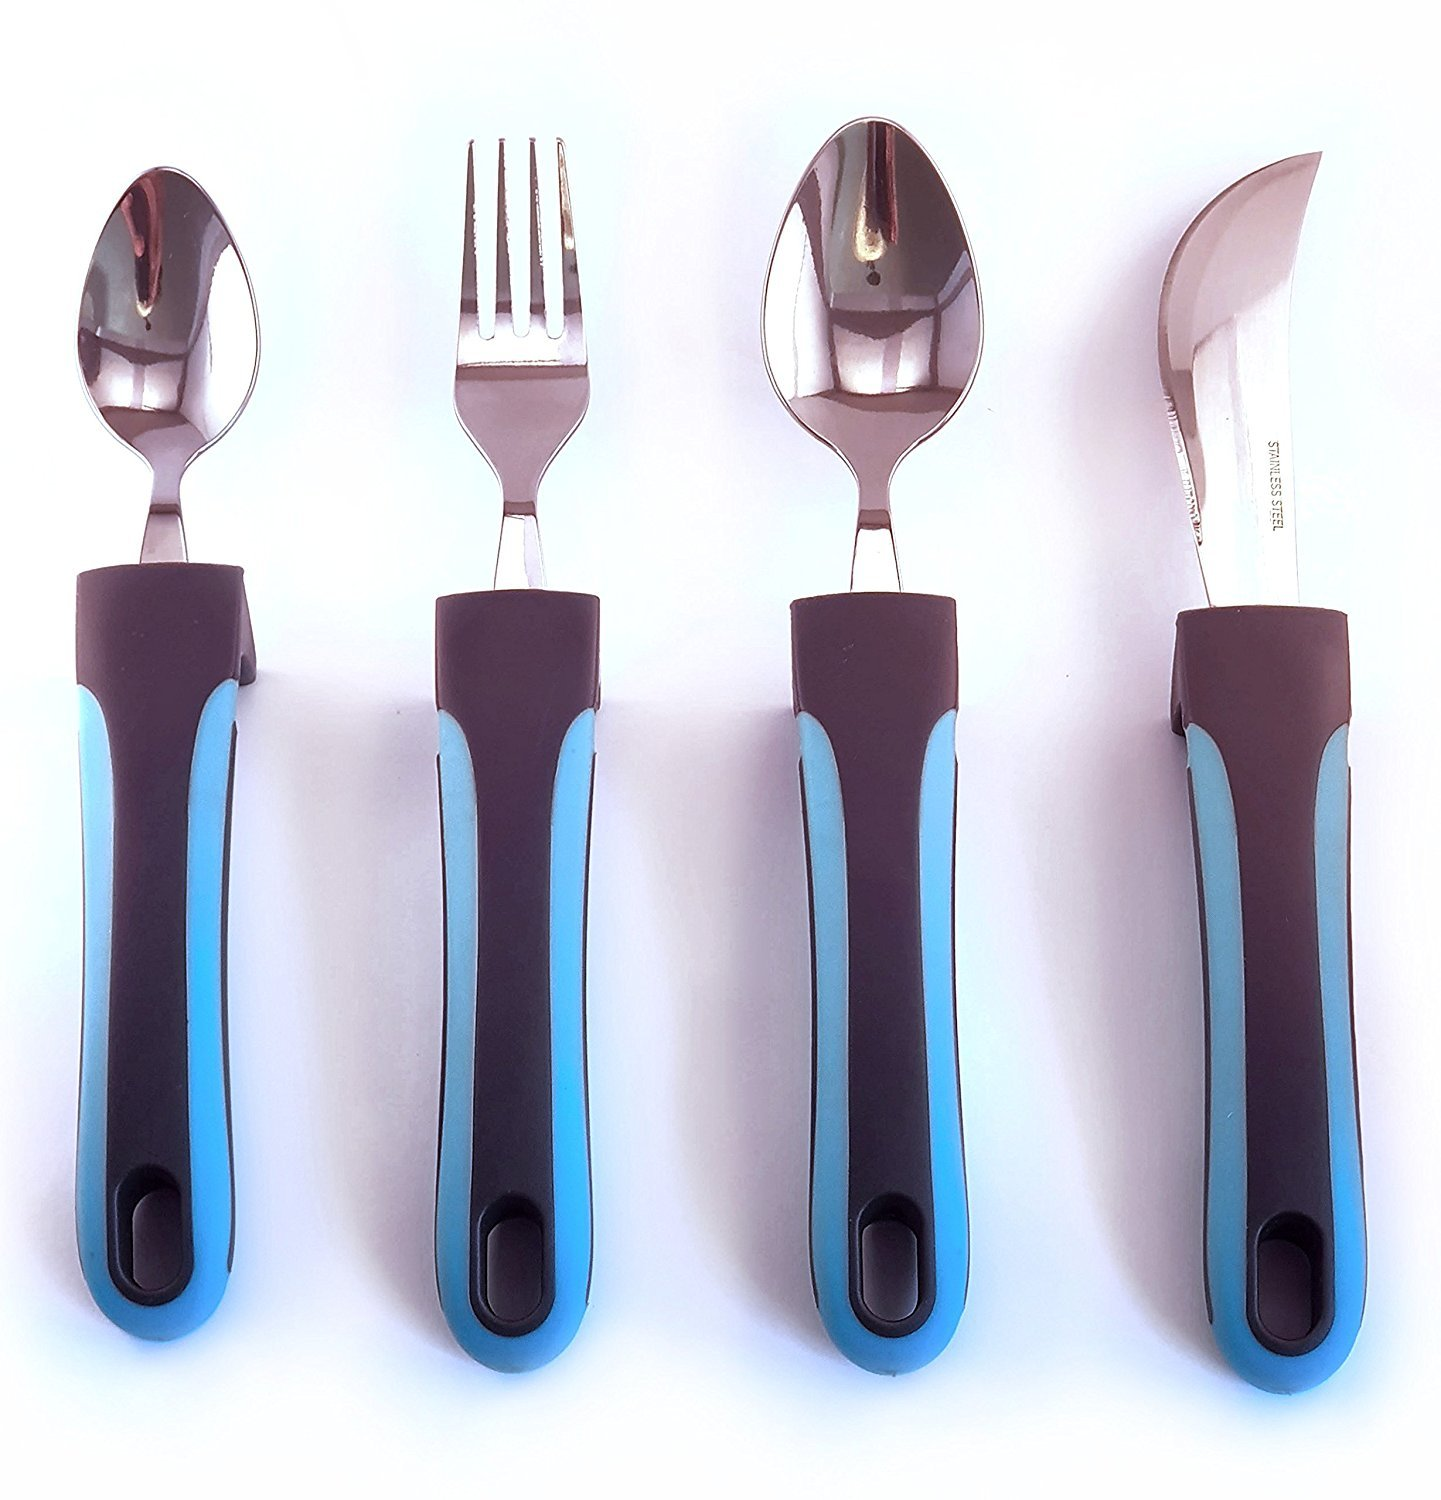 773985891a9b Get Quotations · Adaptive Utensils - Weighted Knives, Forks and Spoons  Silverware Set for Elderly People, Disability